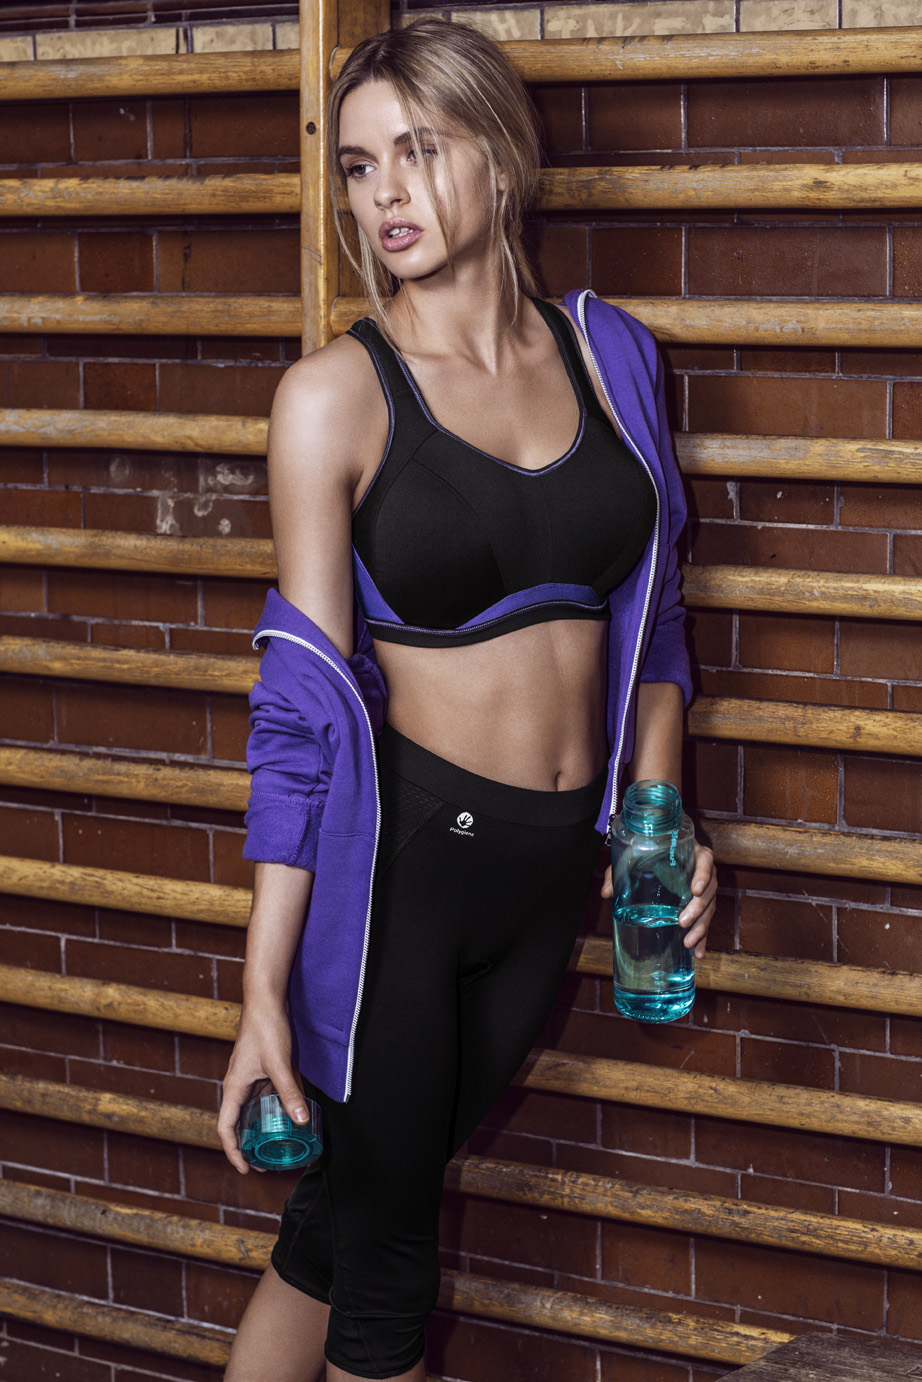 FREYA-ACTIVE-EPIC-ELECTRIC-BLACK-UW-CROP-TOP-SPORTS-BRA-MOULDED-INNER-AA4004-CONSUMER-WEB-AW16.jpg